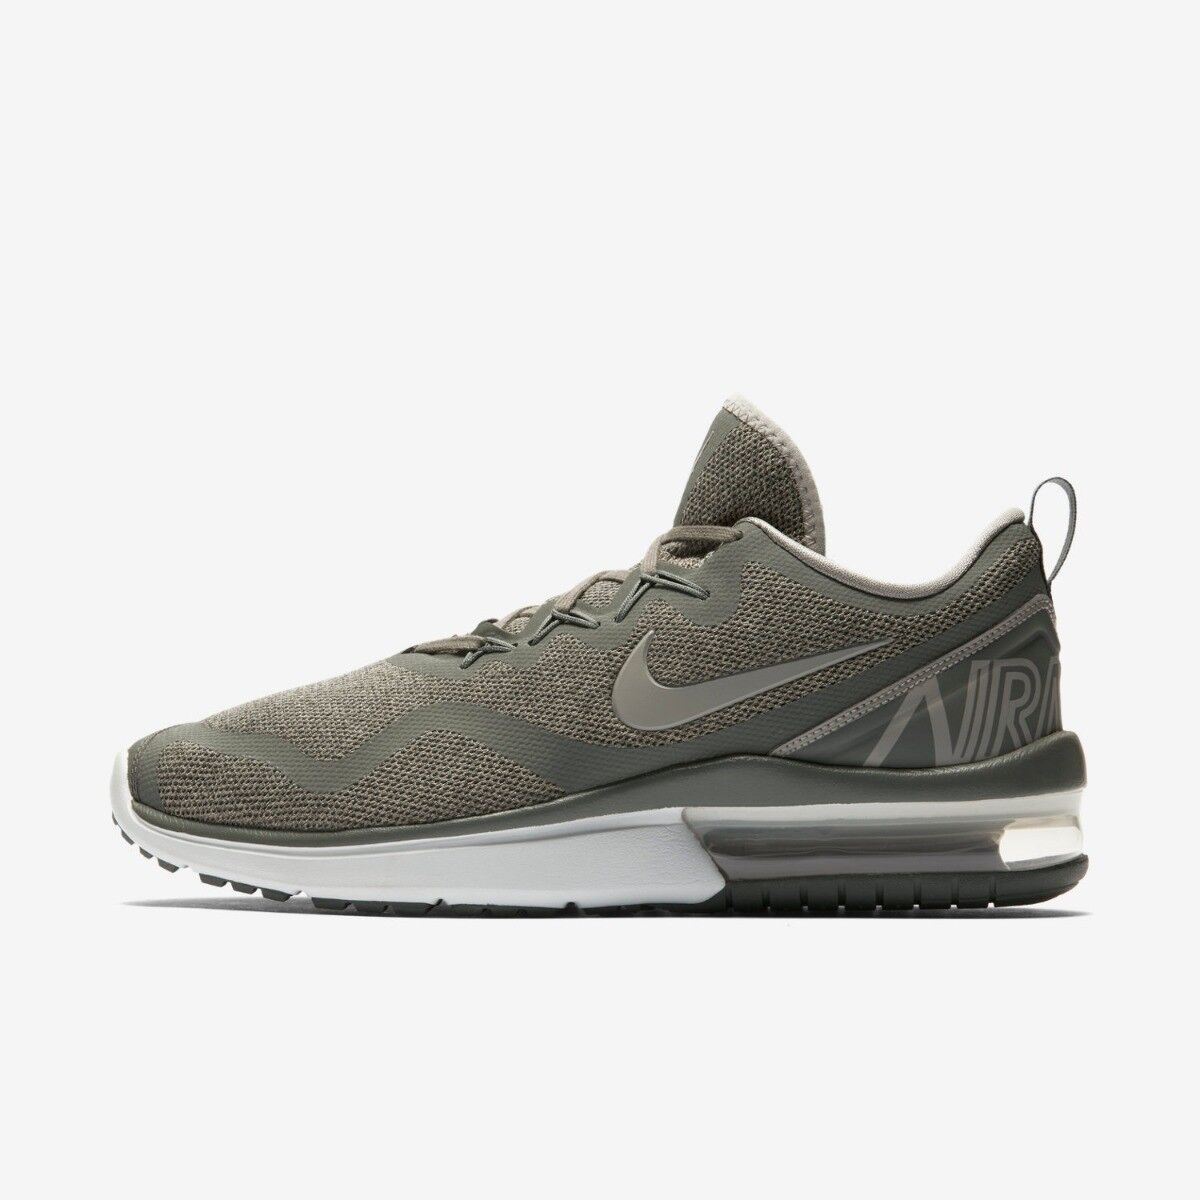 finest selection a7680 86279 Nike Air Max Fury Fury Fury Mens Running Trainer Shoe River Rock 7 - 11 New